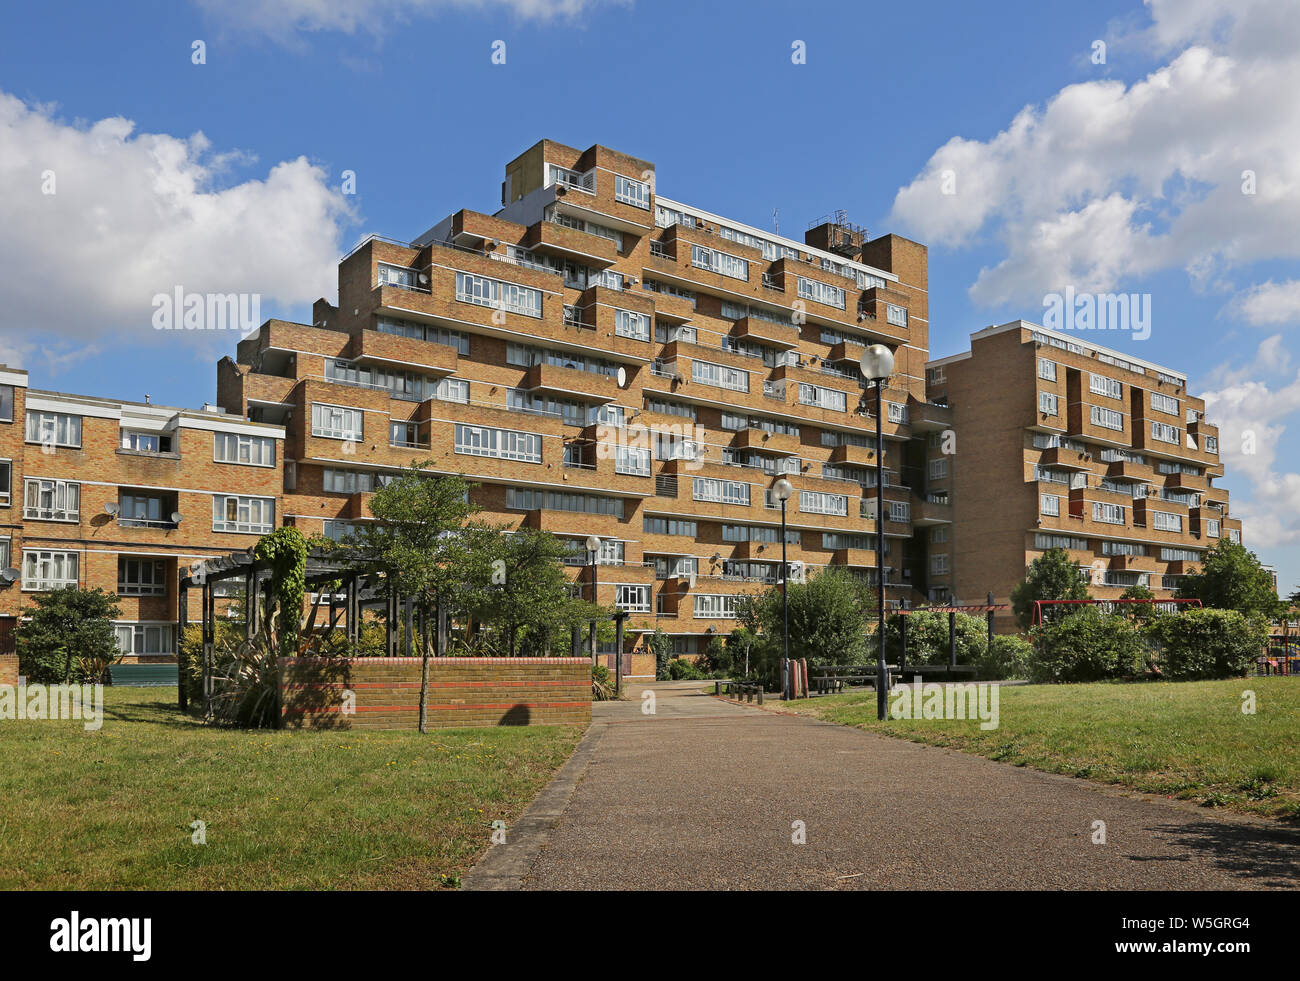 Ground level view of Dawson's Heights, famous 1960s public housing project in South London, designed by Kate Macintosh. Ladlands block from south. Stock Photo